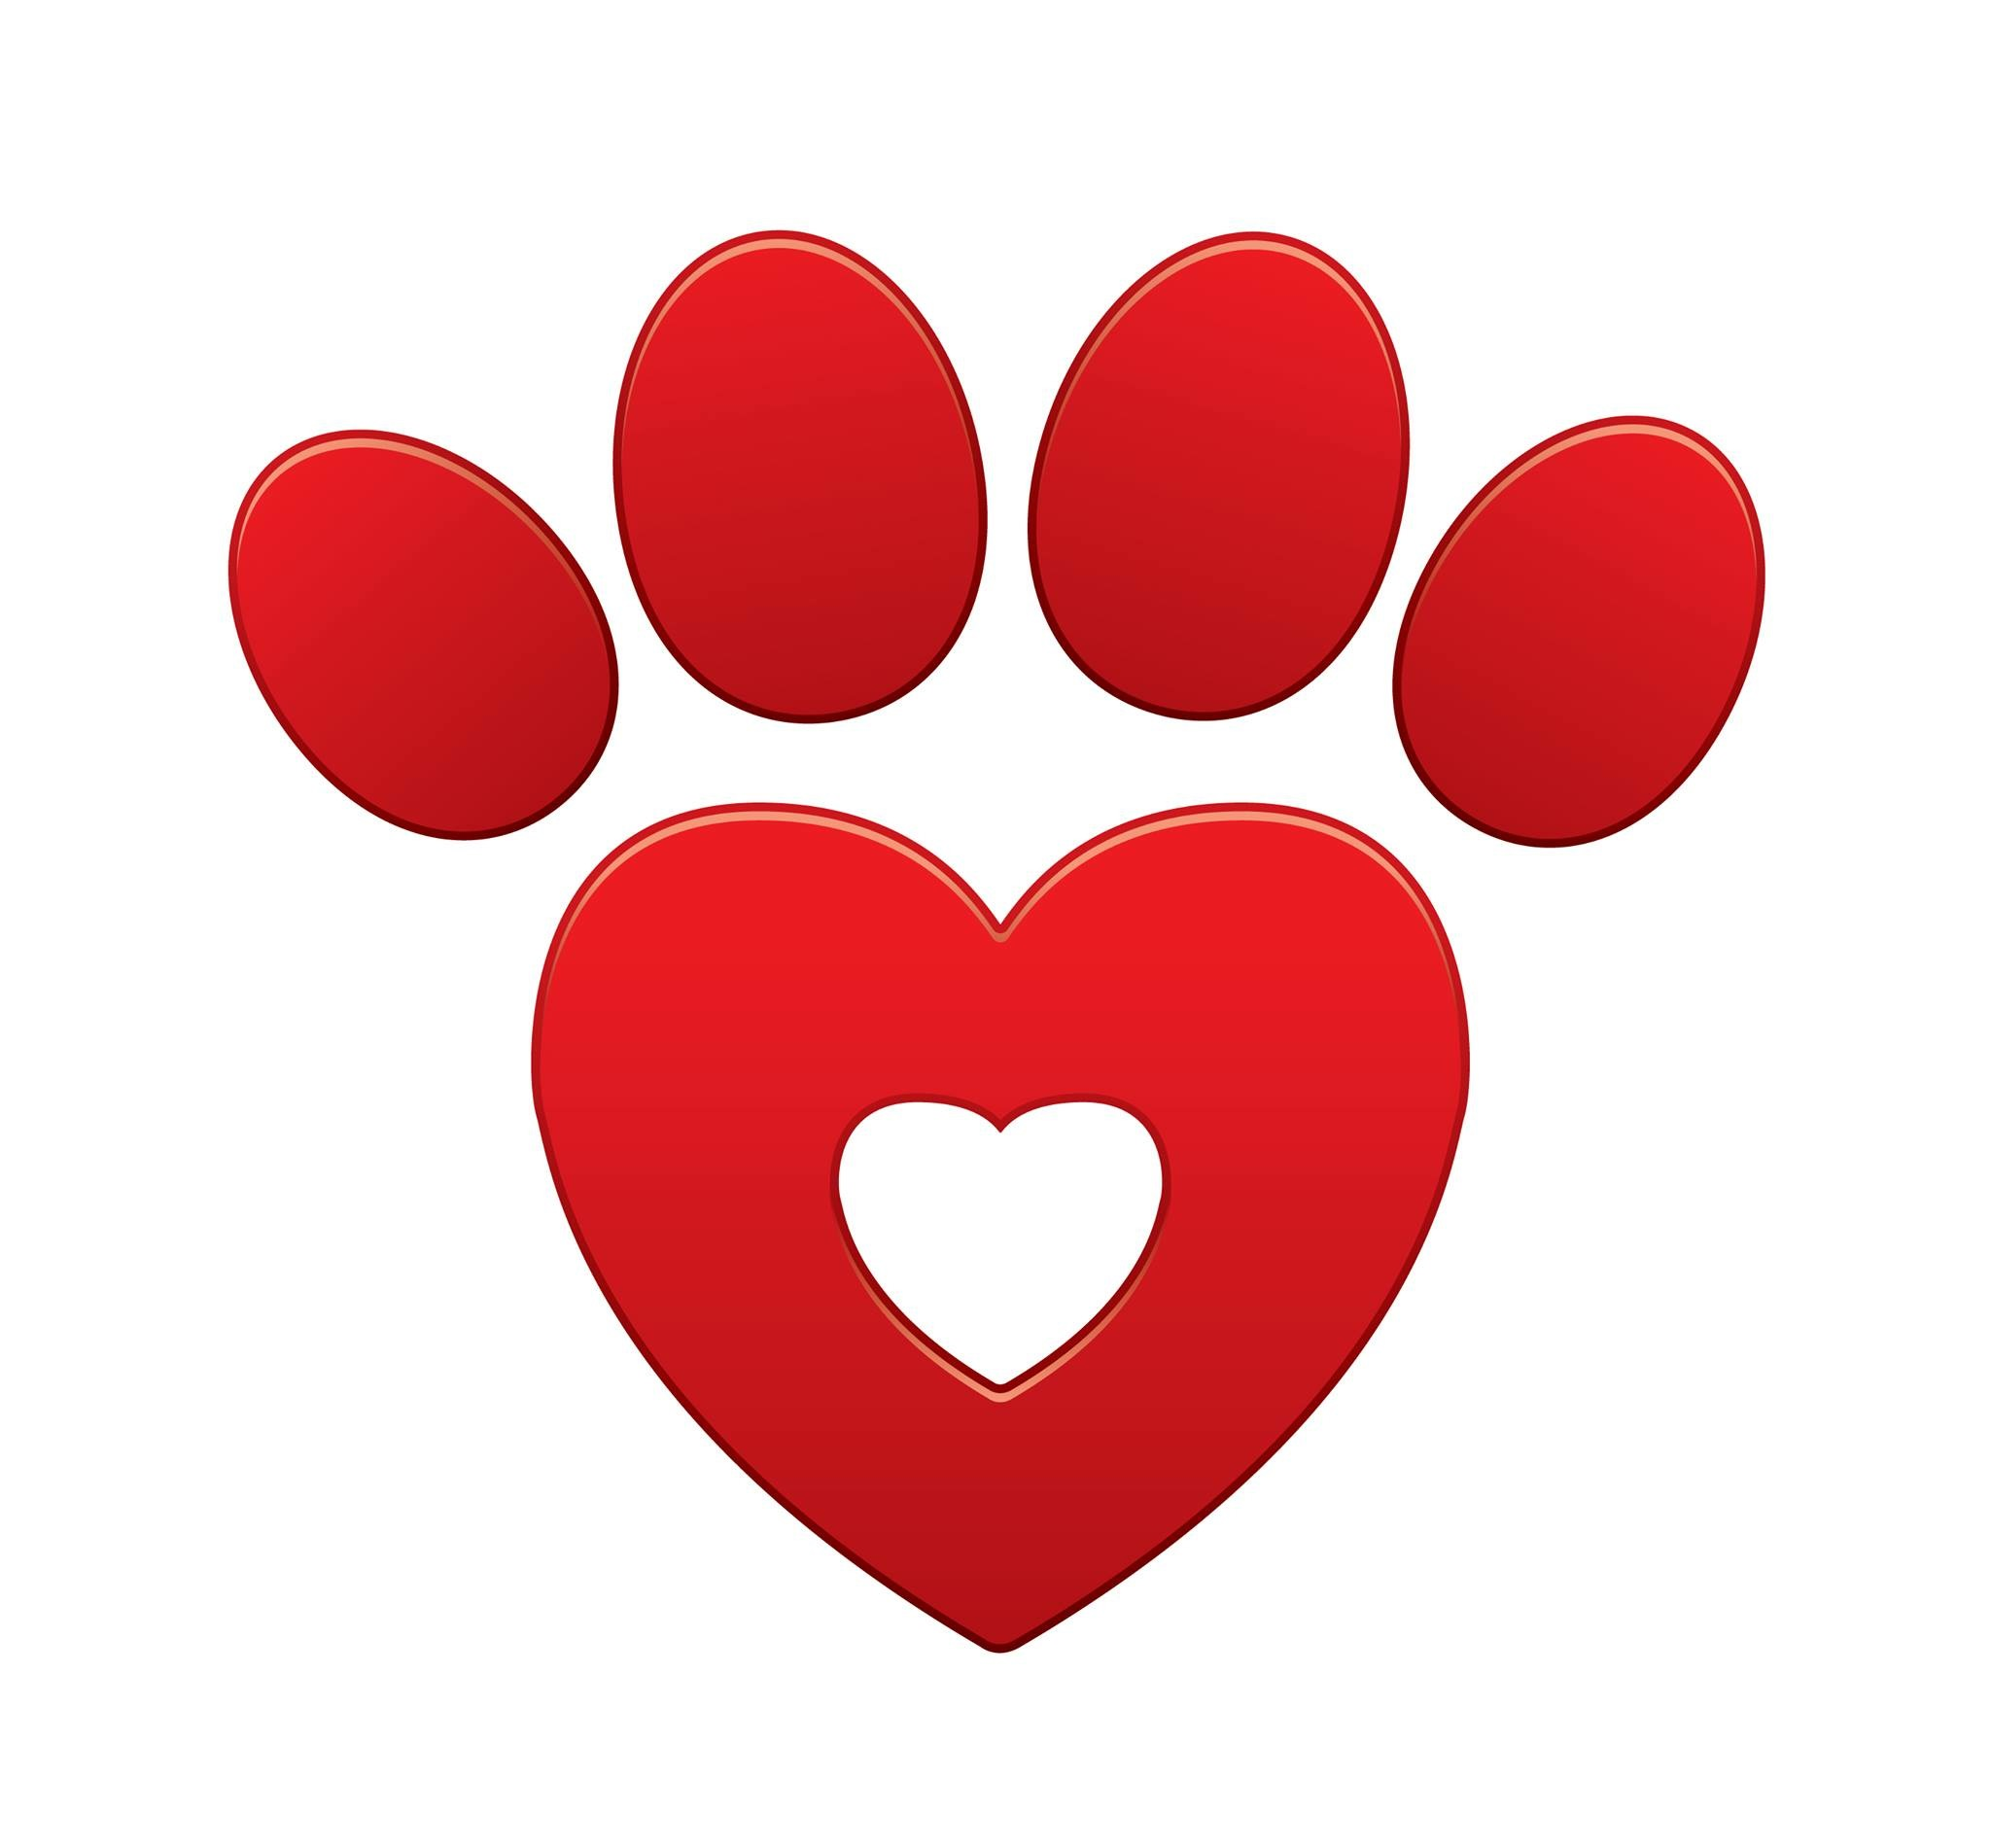 Loving hearts keep our precious animals safe.